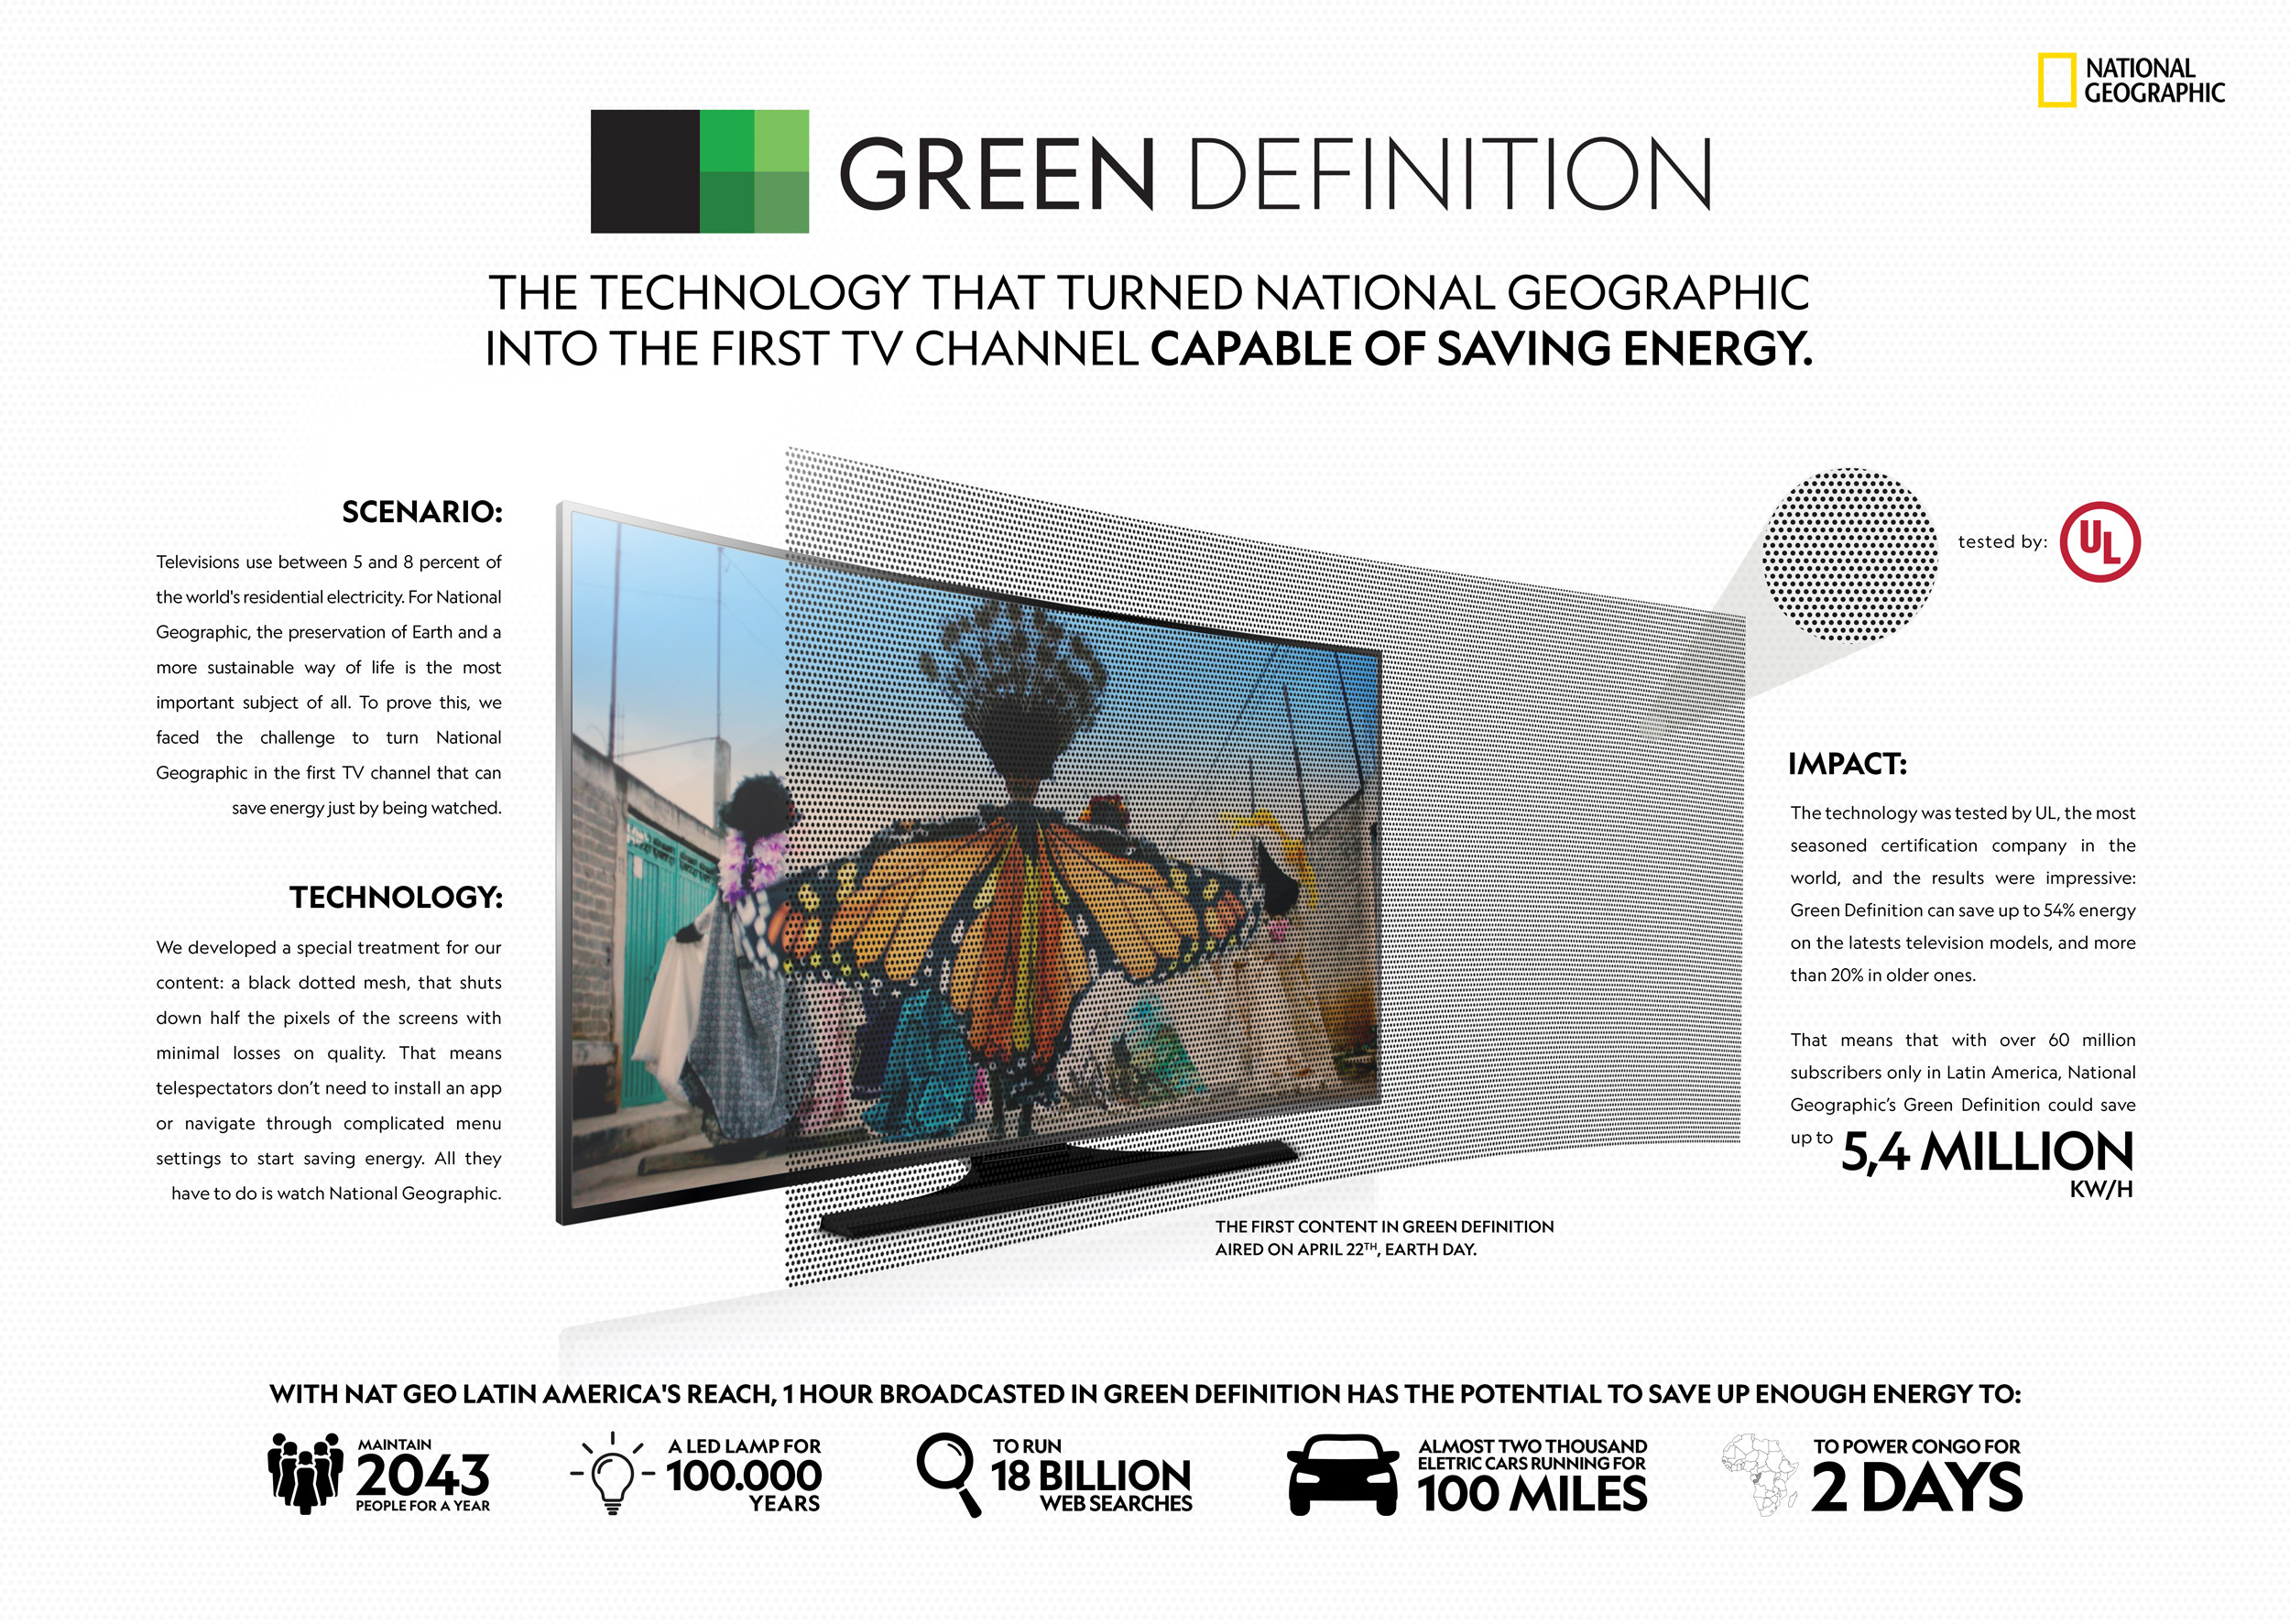 NatGeo---Green-Definition.jpg